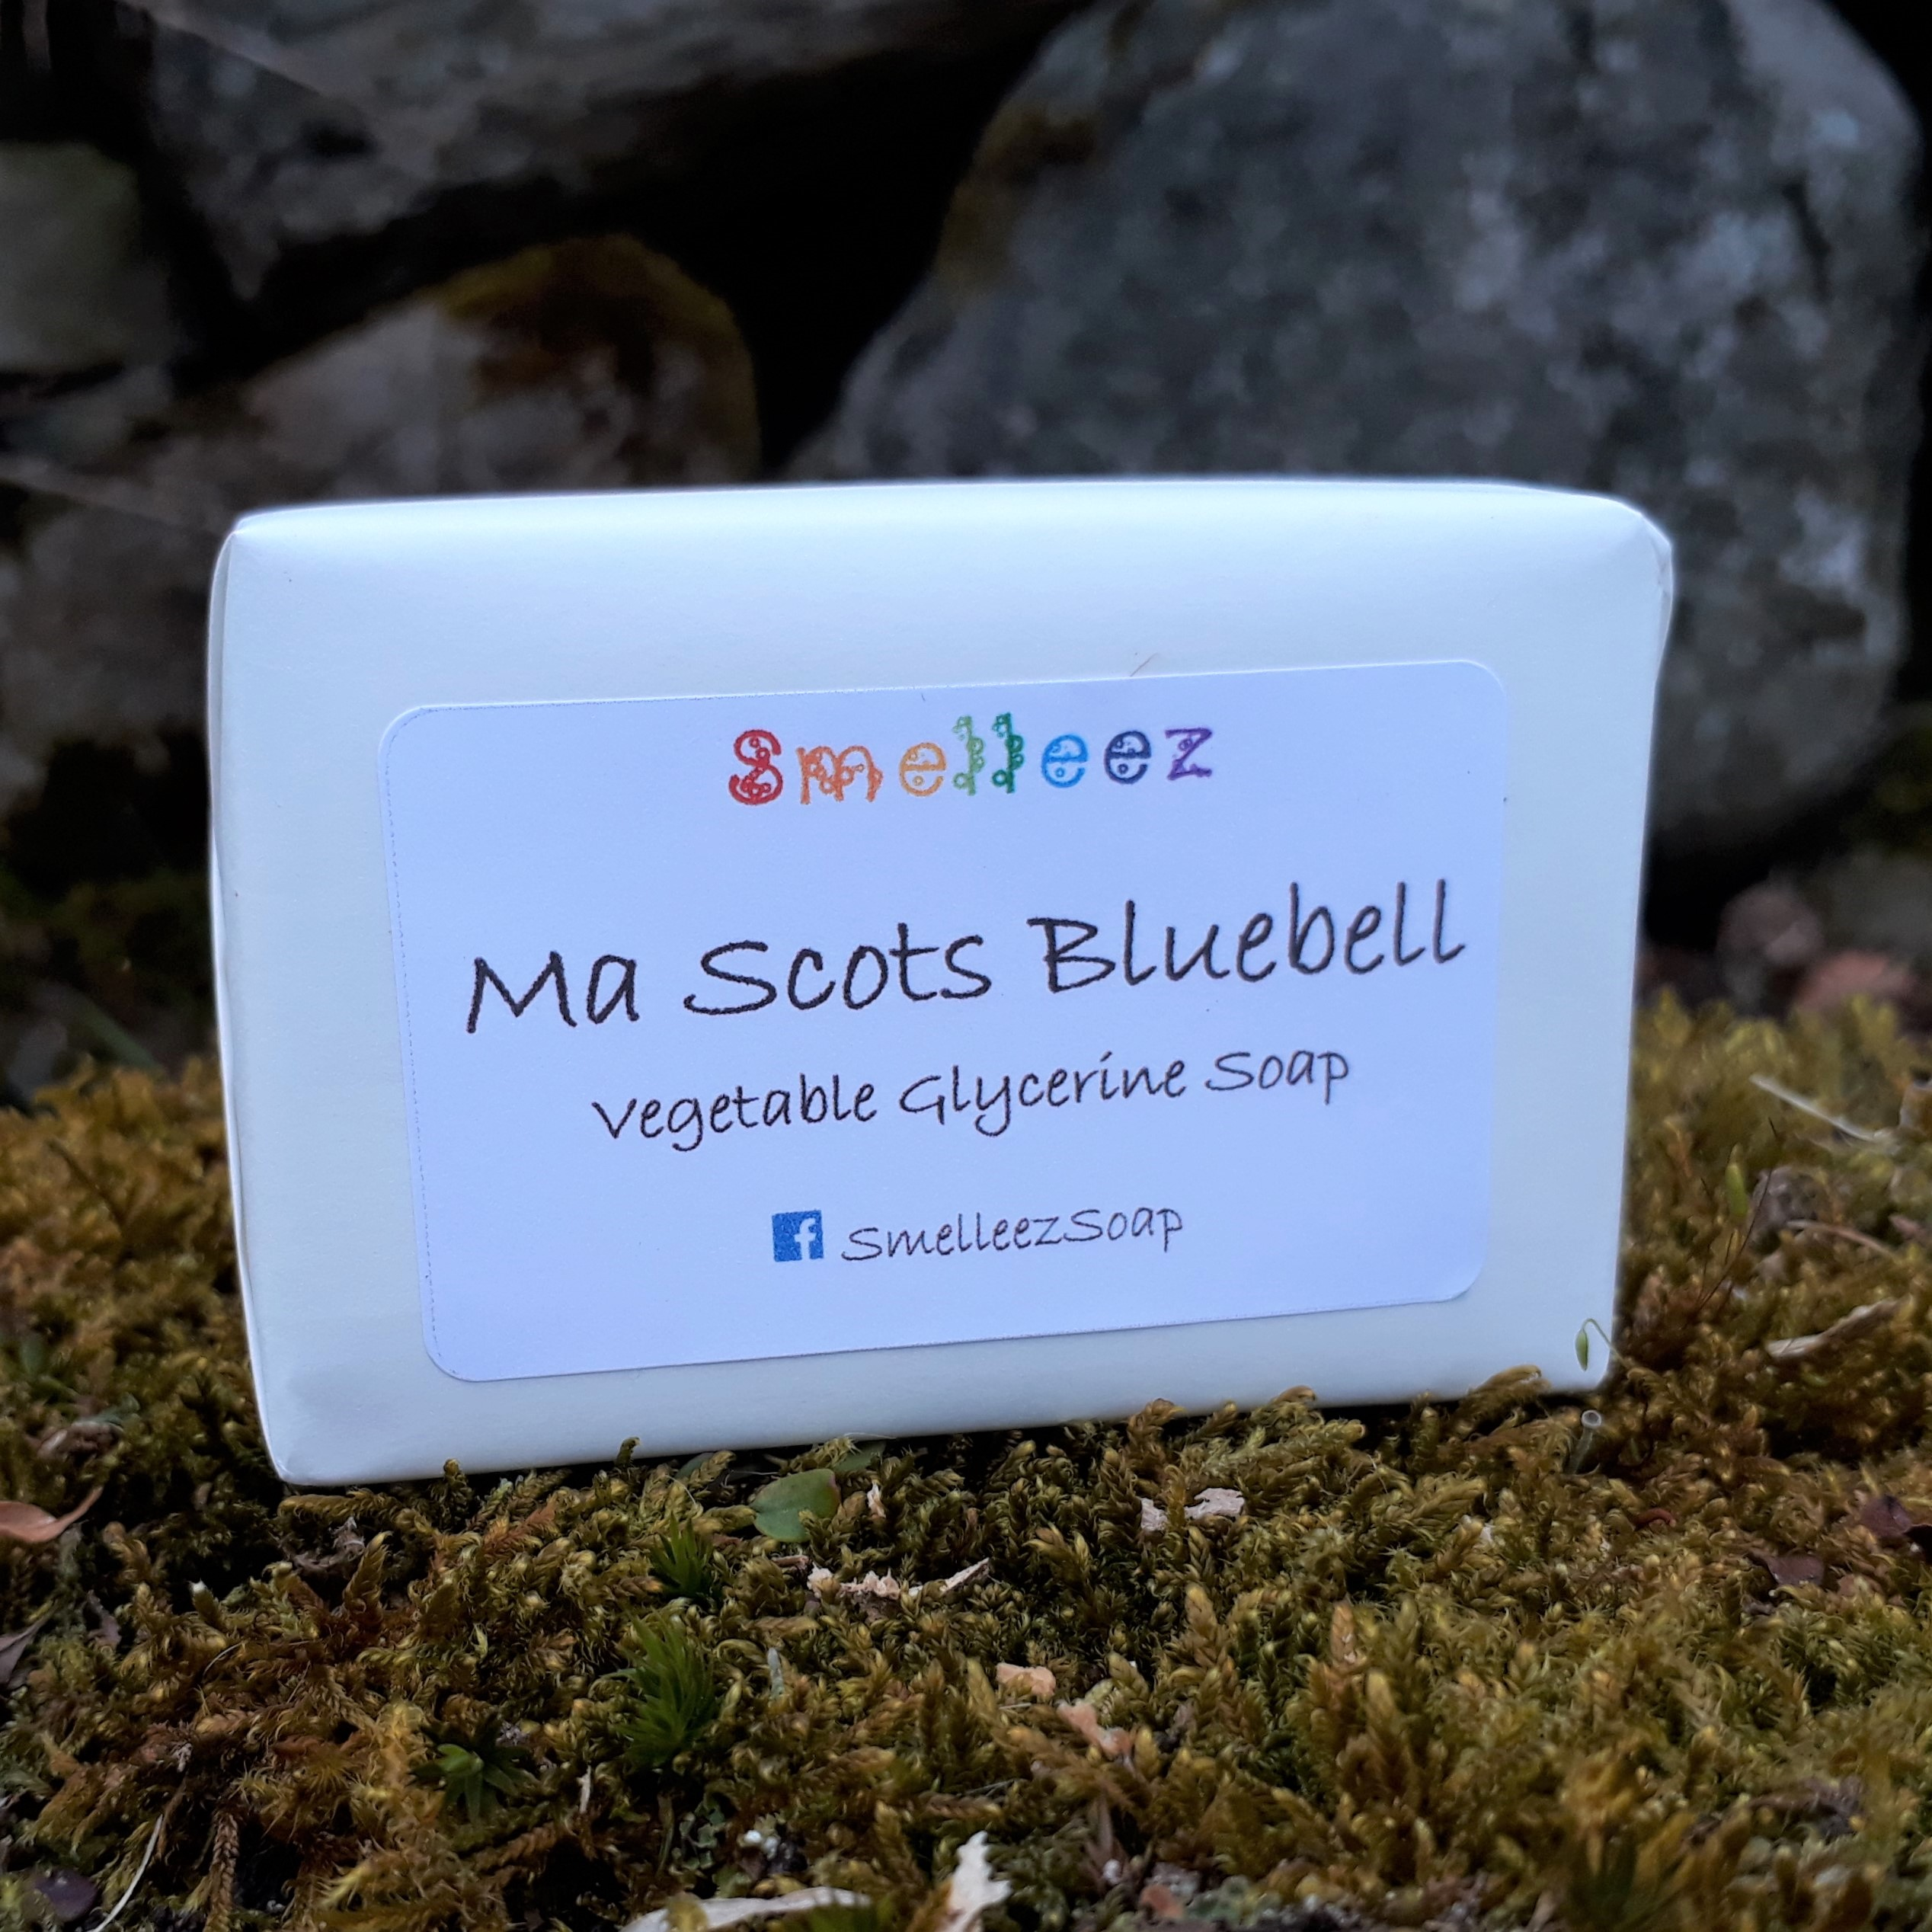 Ma Scots Bluebell